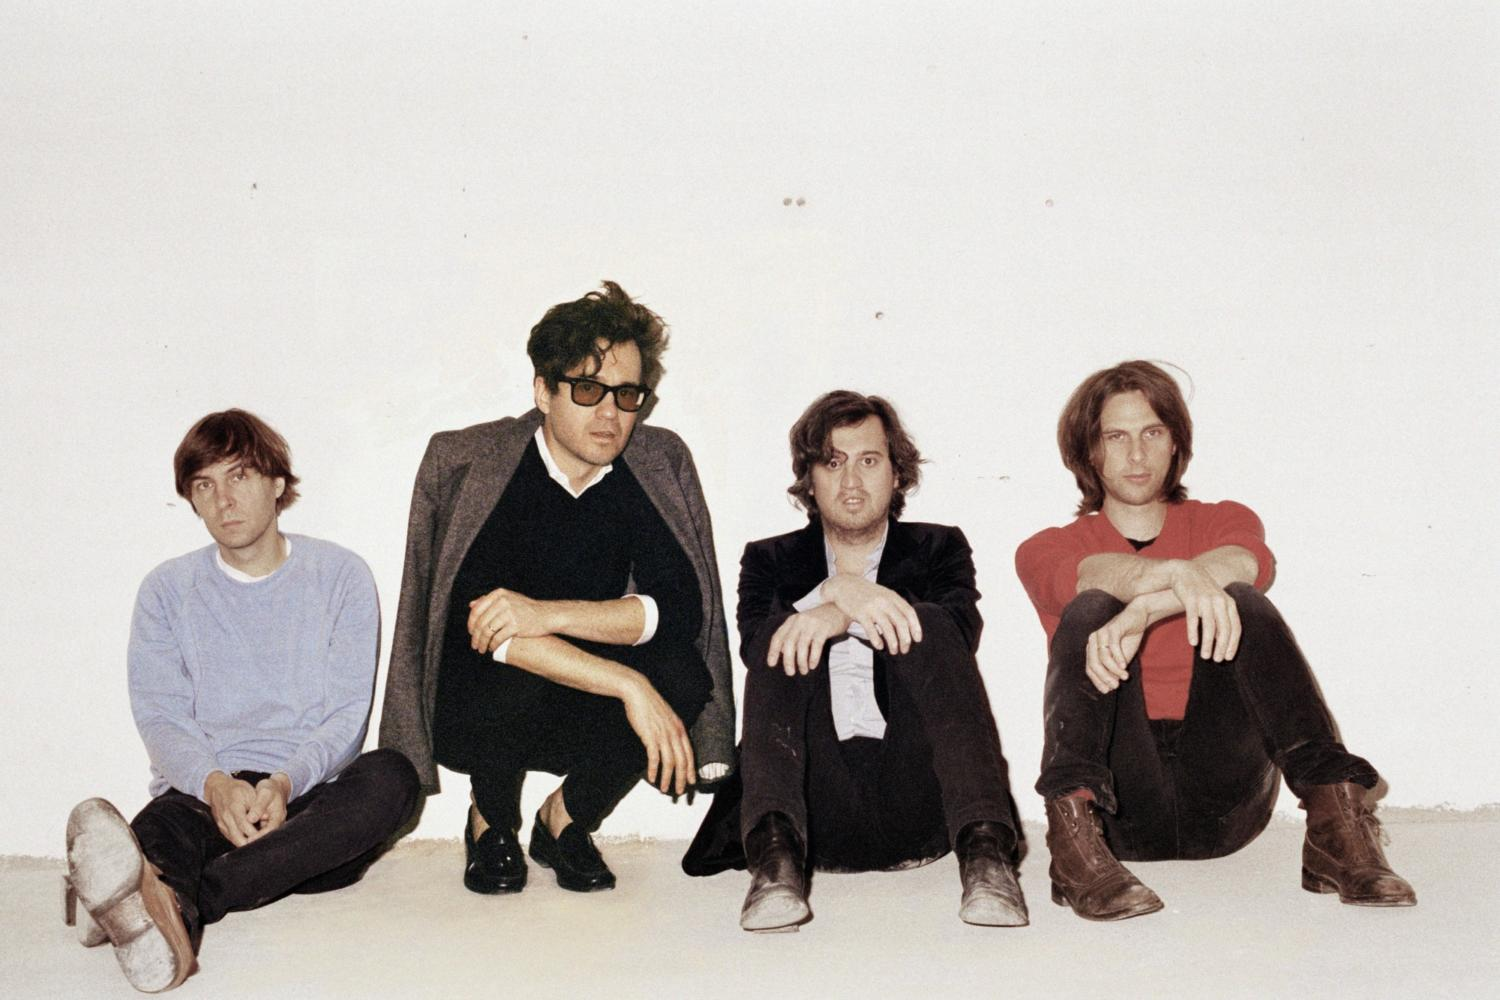 Phoenix issue apology for working with R Kelly